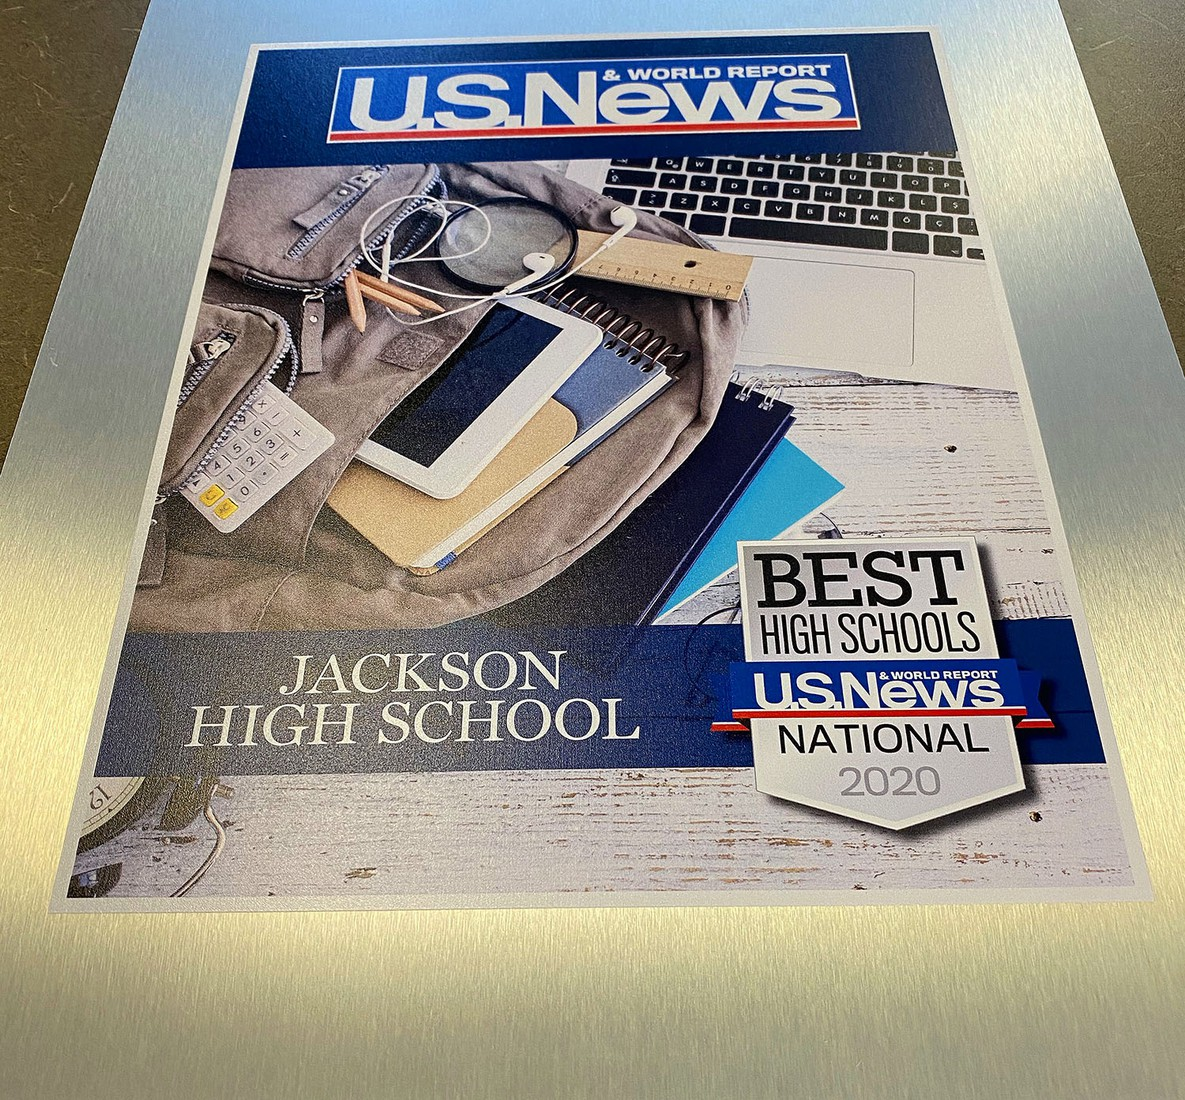 Jackson High School was named one of the top 50 high schools in Ohio and one of the best in the country by U.S. News & World Report this past spring. This plaque, which will hang in Jackson High School, arrived this week.